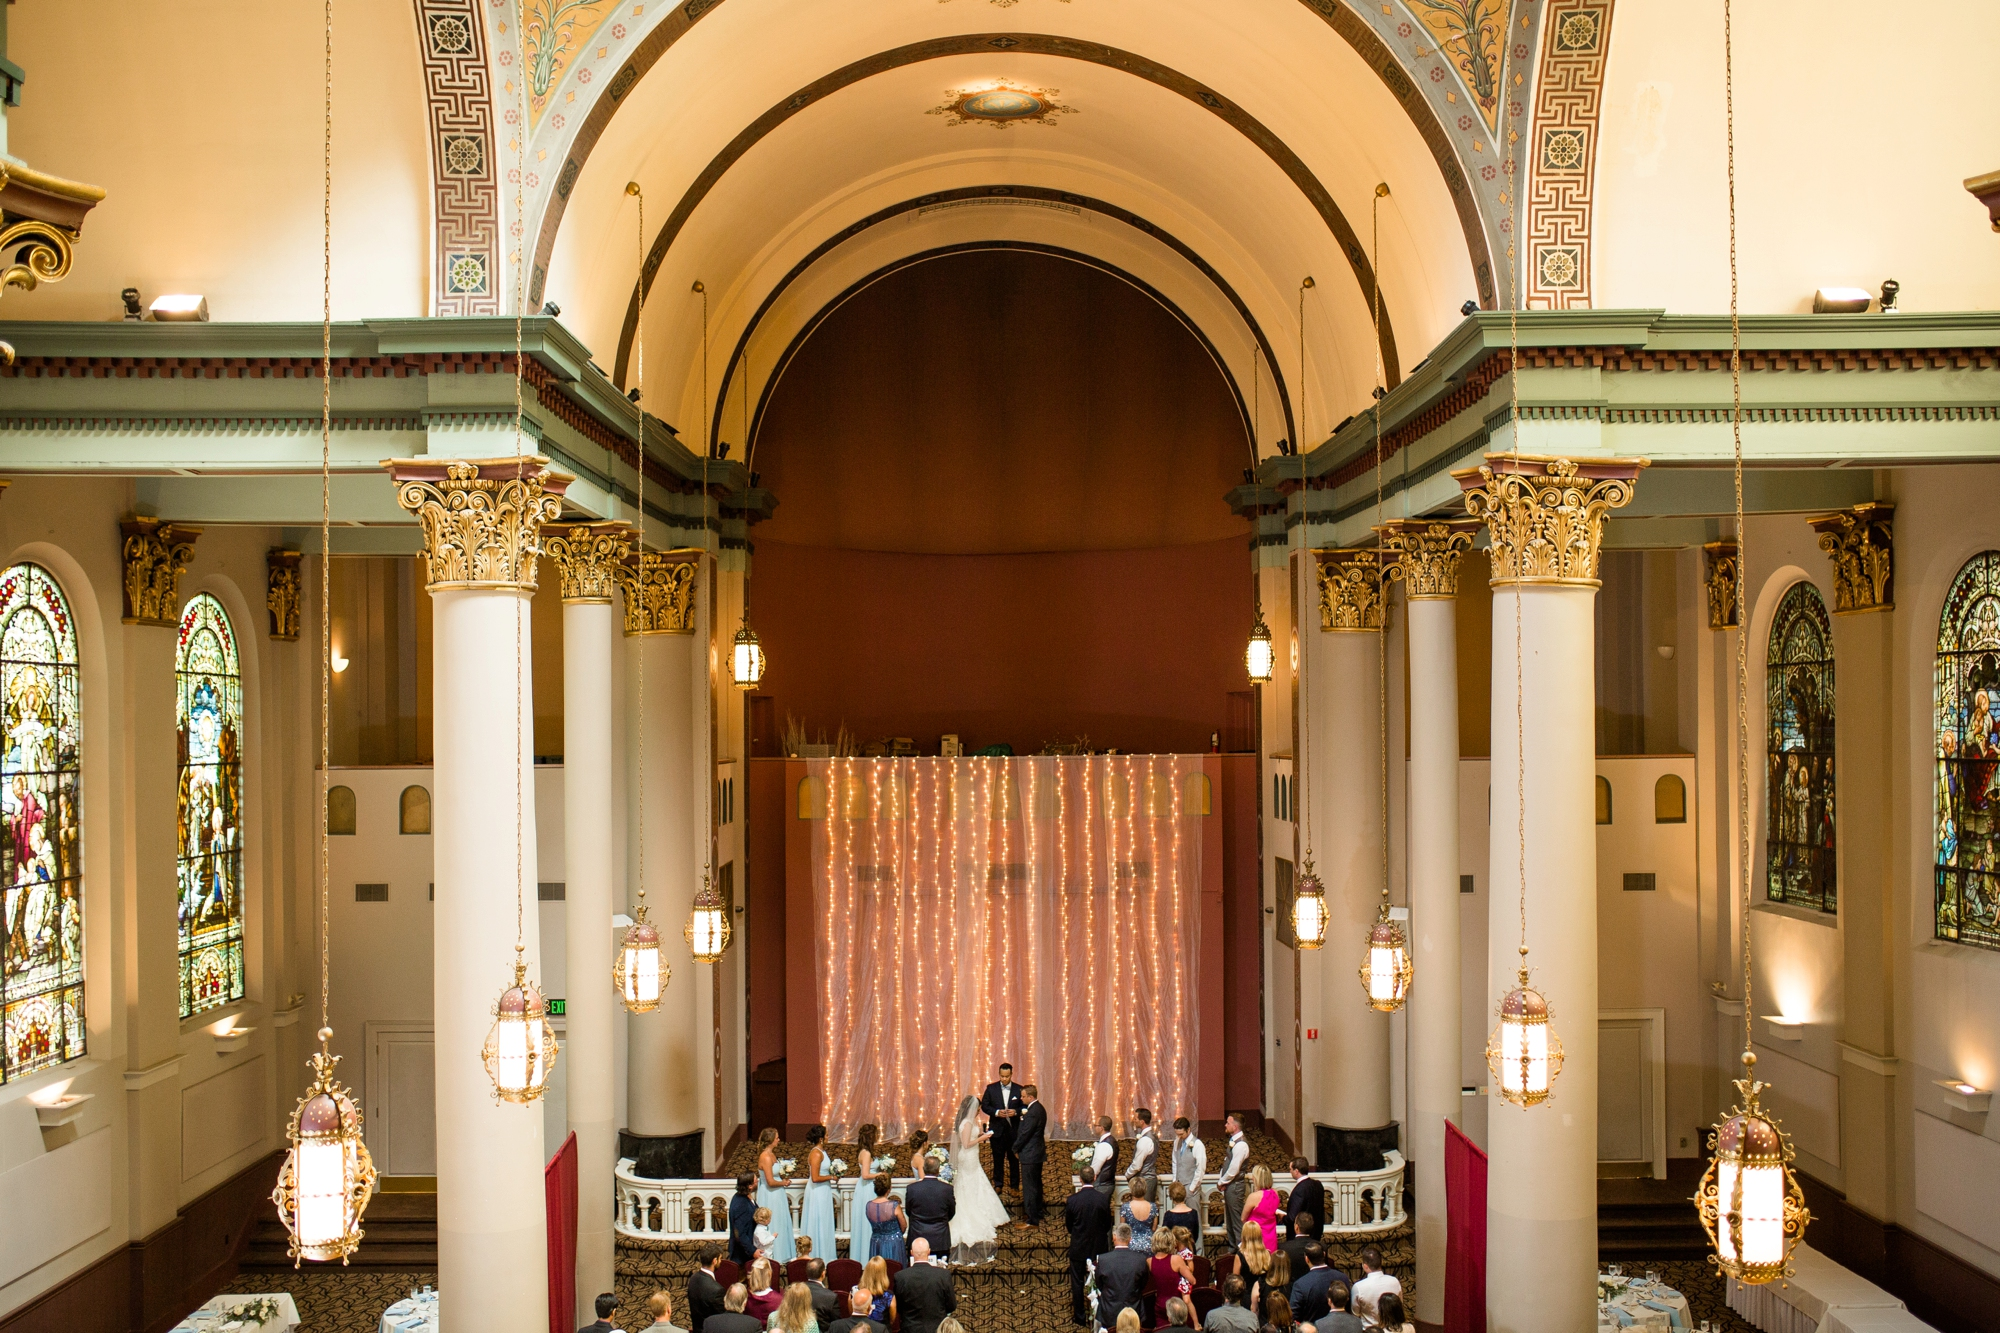 the grand hall at the priory, the grand hall at the priory wedding photos, pittsburgh wedding photographer, pittsburgh wedding venues, the priory grand hall, the priory bakery